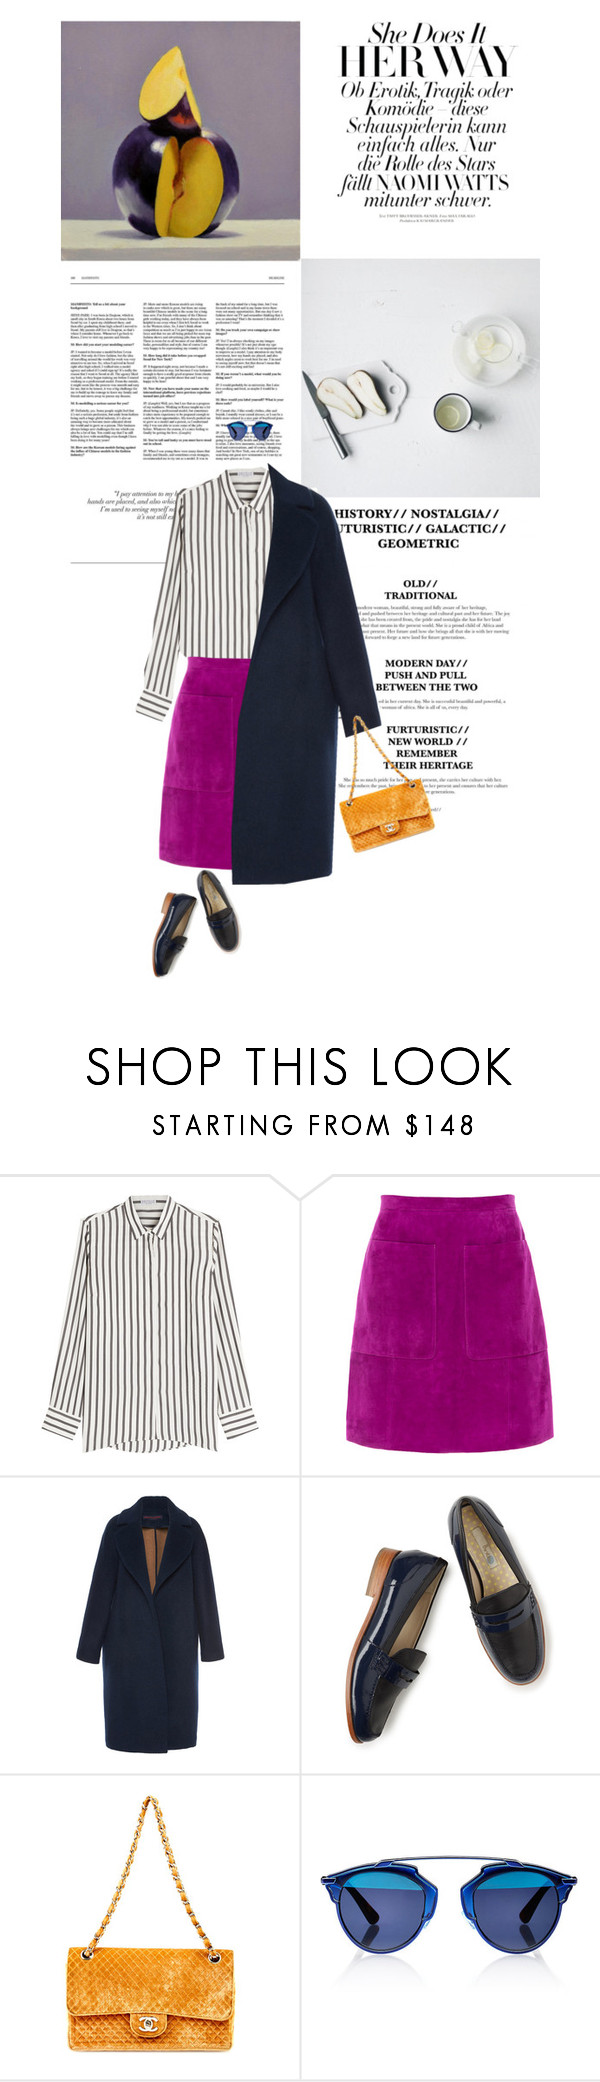 """""""Untitled #844"""" by homeless-drifter ❤ liked on Polyvore featuring Brunello Cucinelli, L.K.Bennett, Martin Grant, Boden and Christian Dior"""